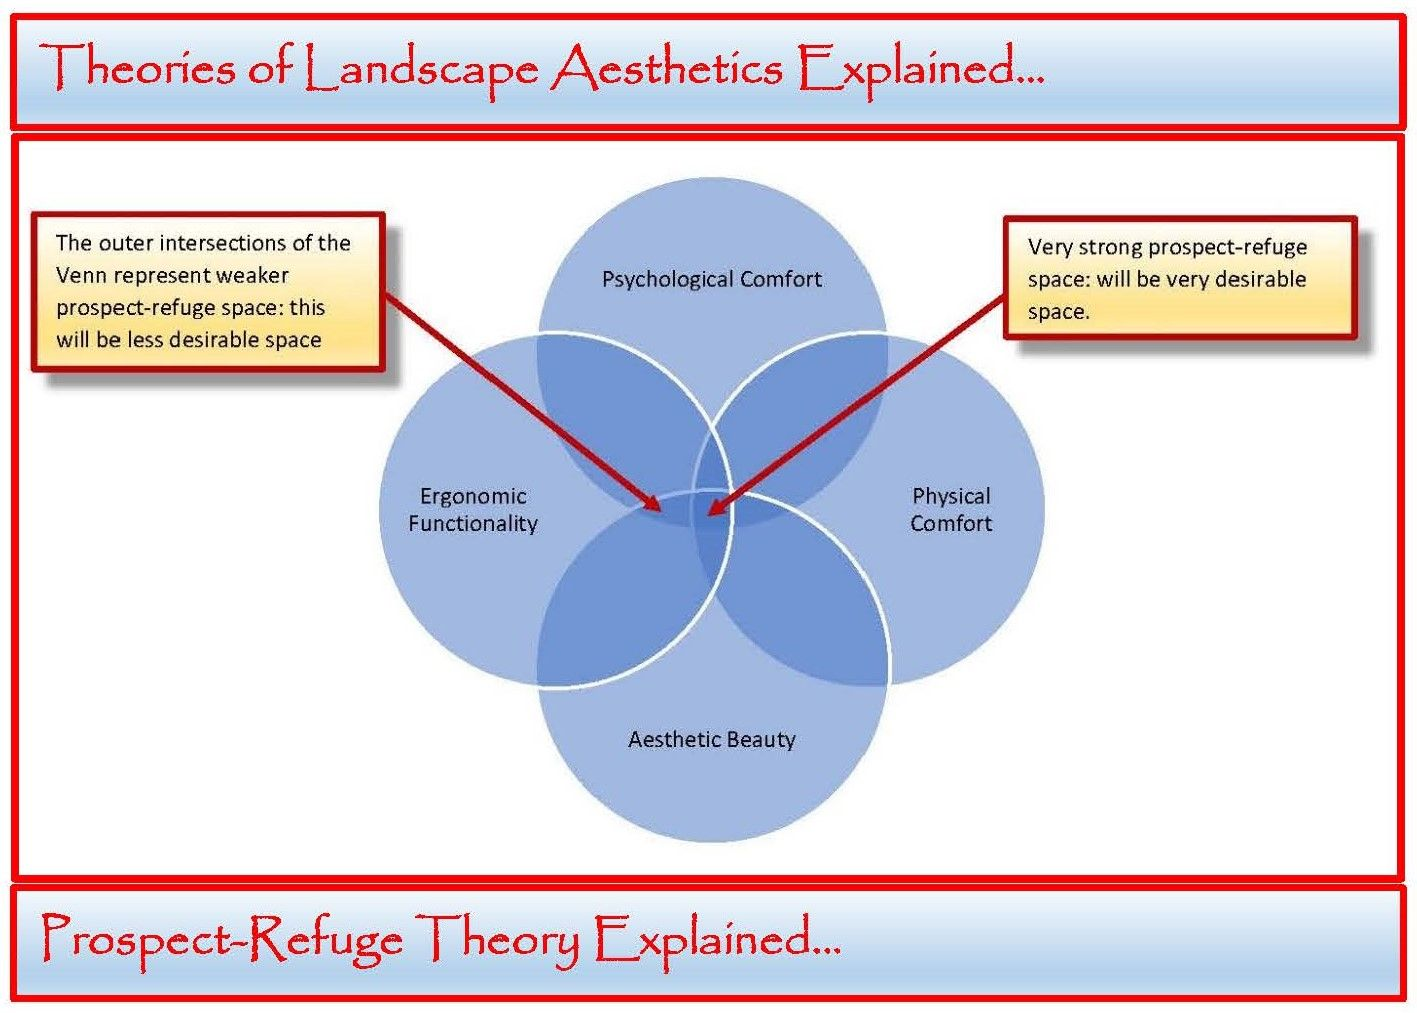 medium resolution of the theory of prospect refuge explained and elaborated for landscape architects landscape designers garden designers and architects learn more